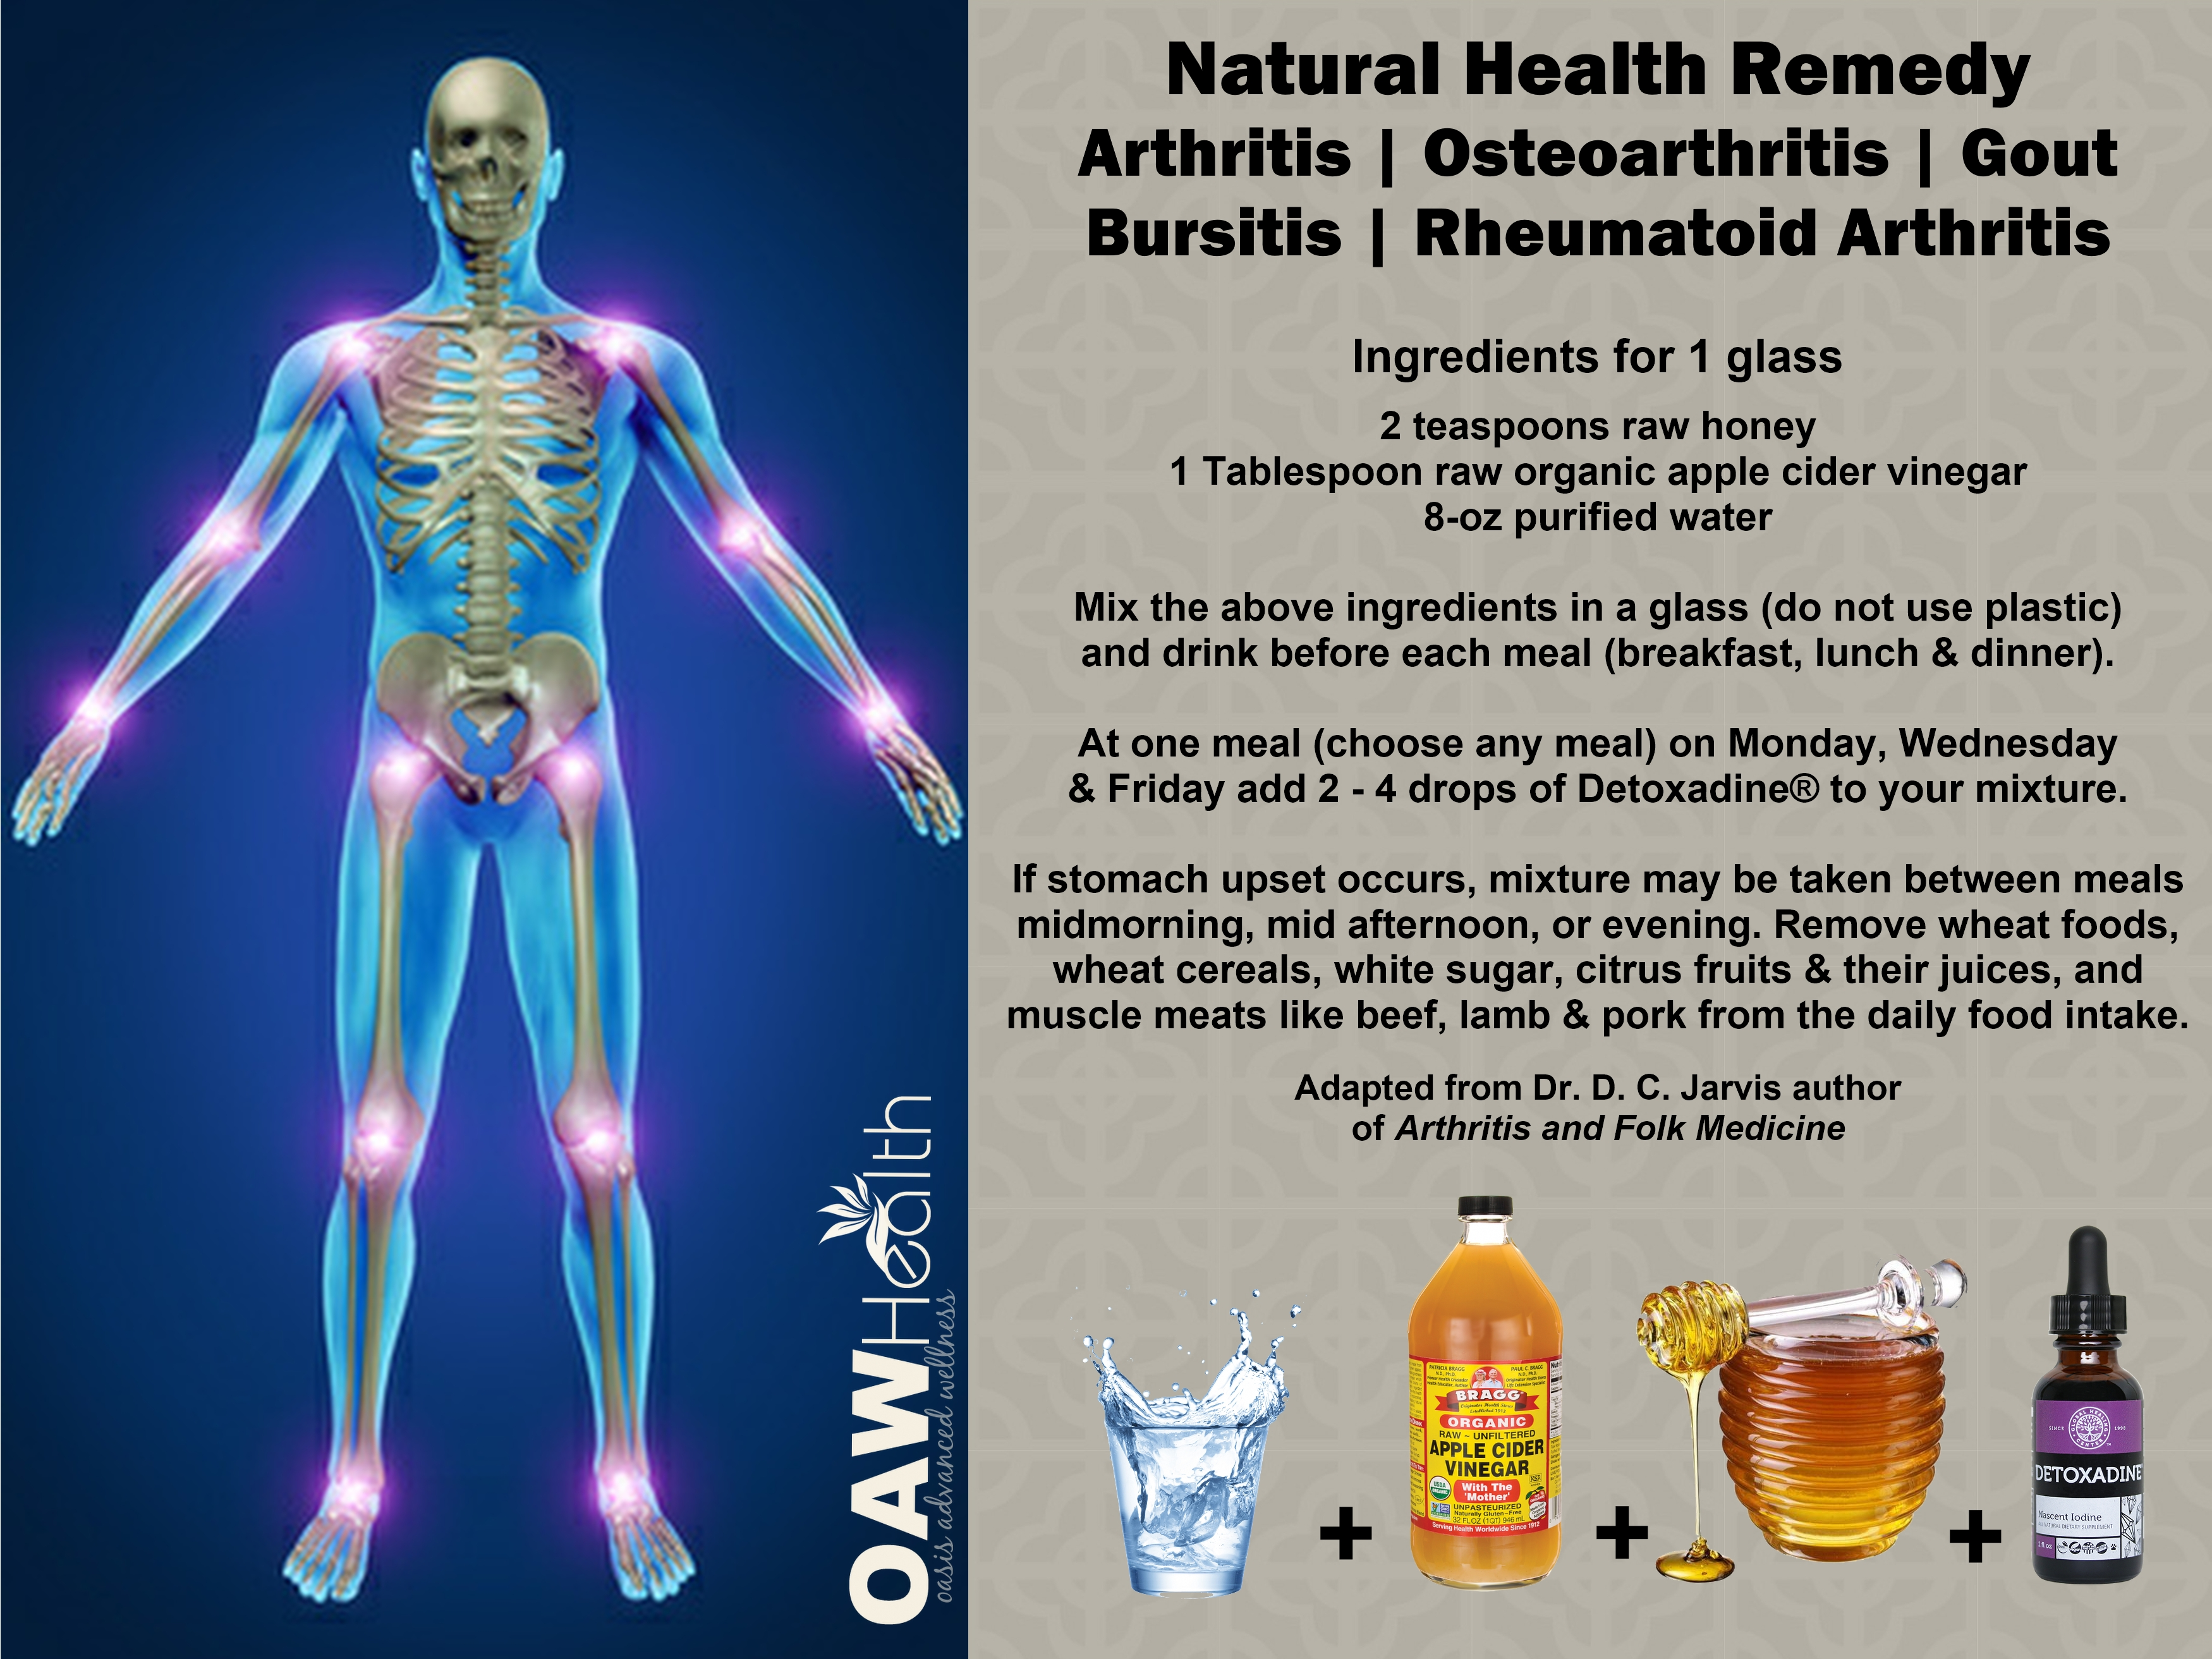 Natural Health Remedy for Arthritis